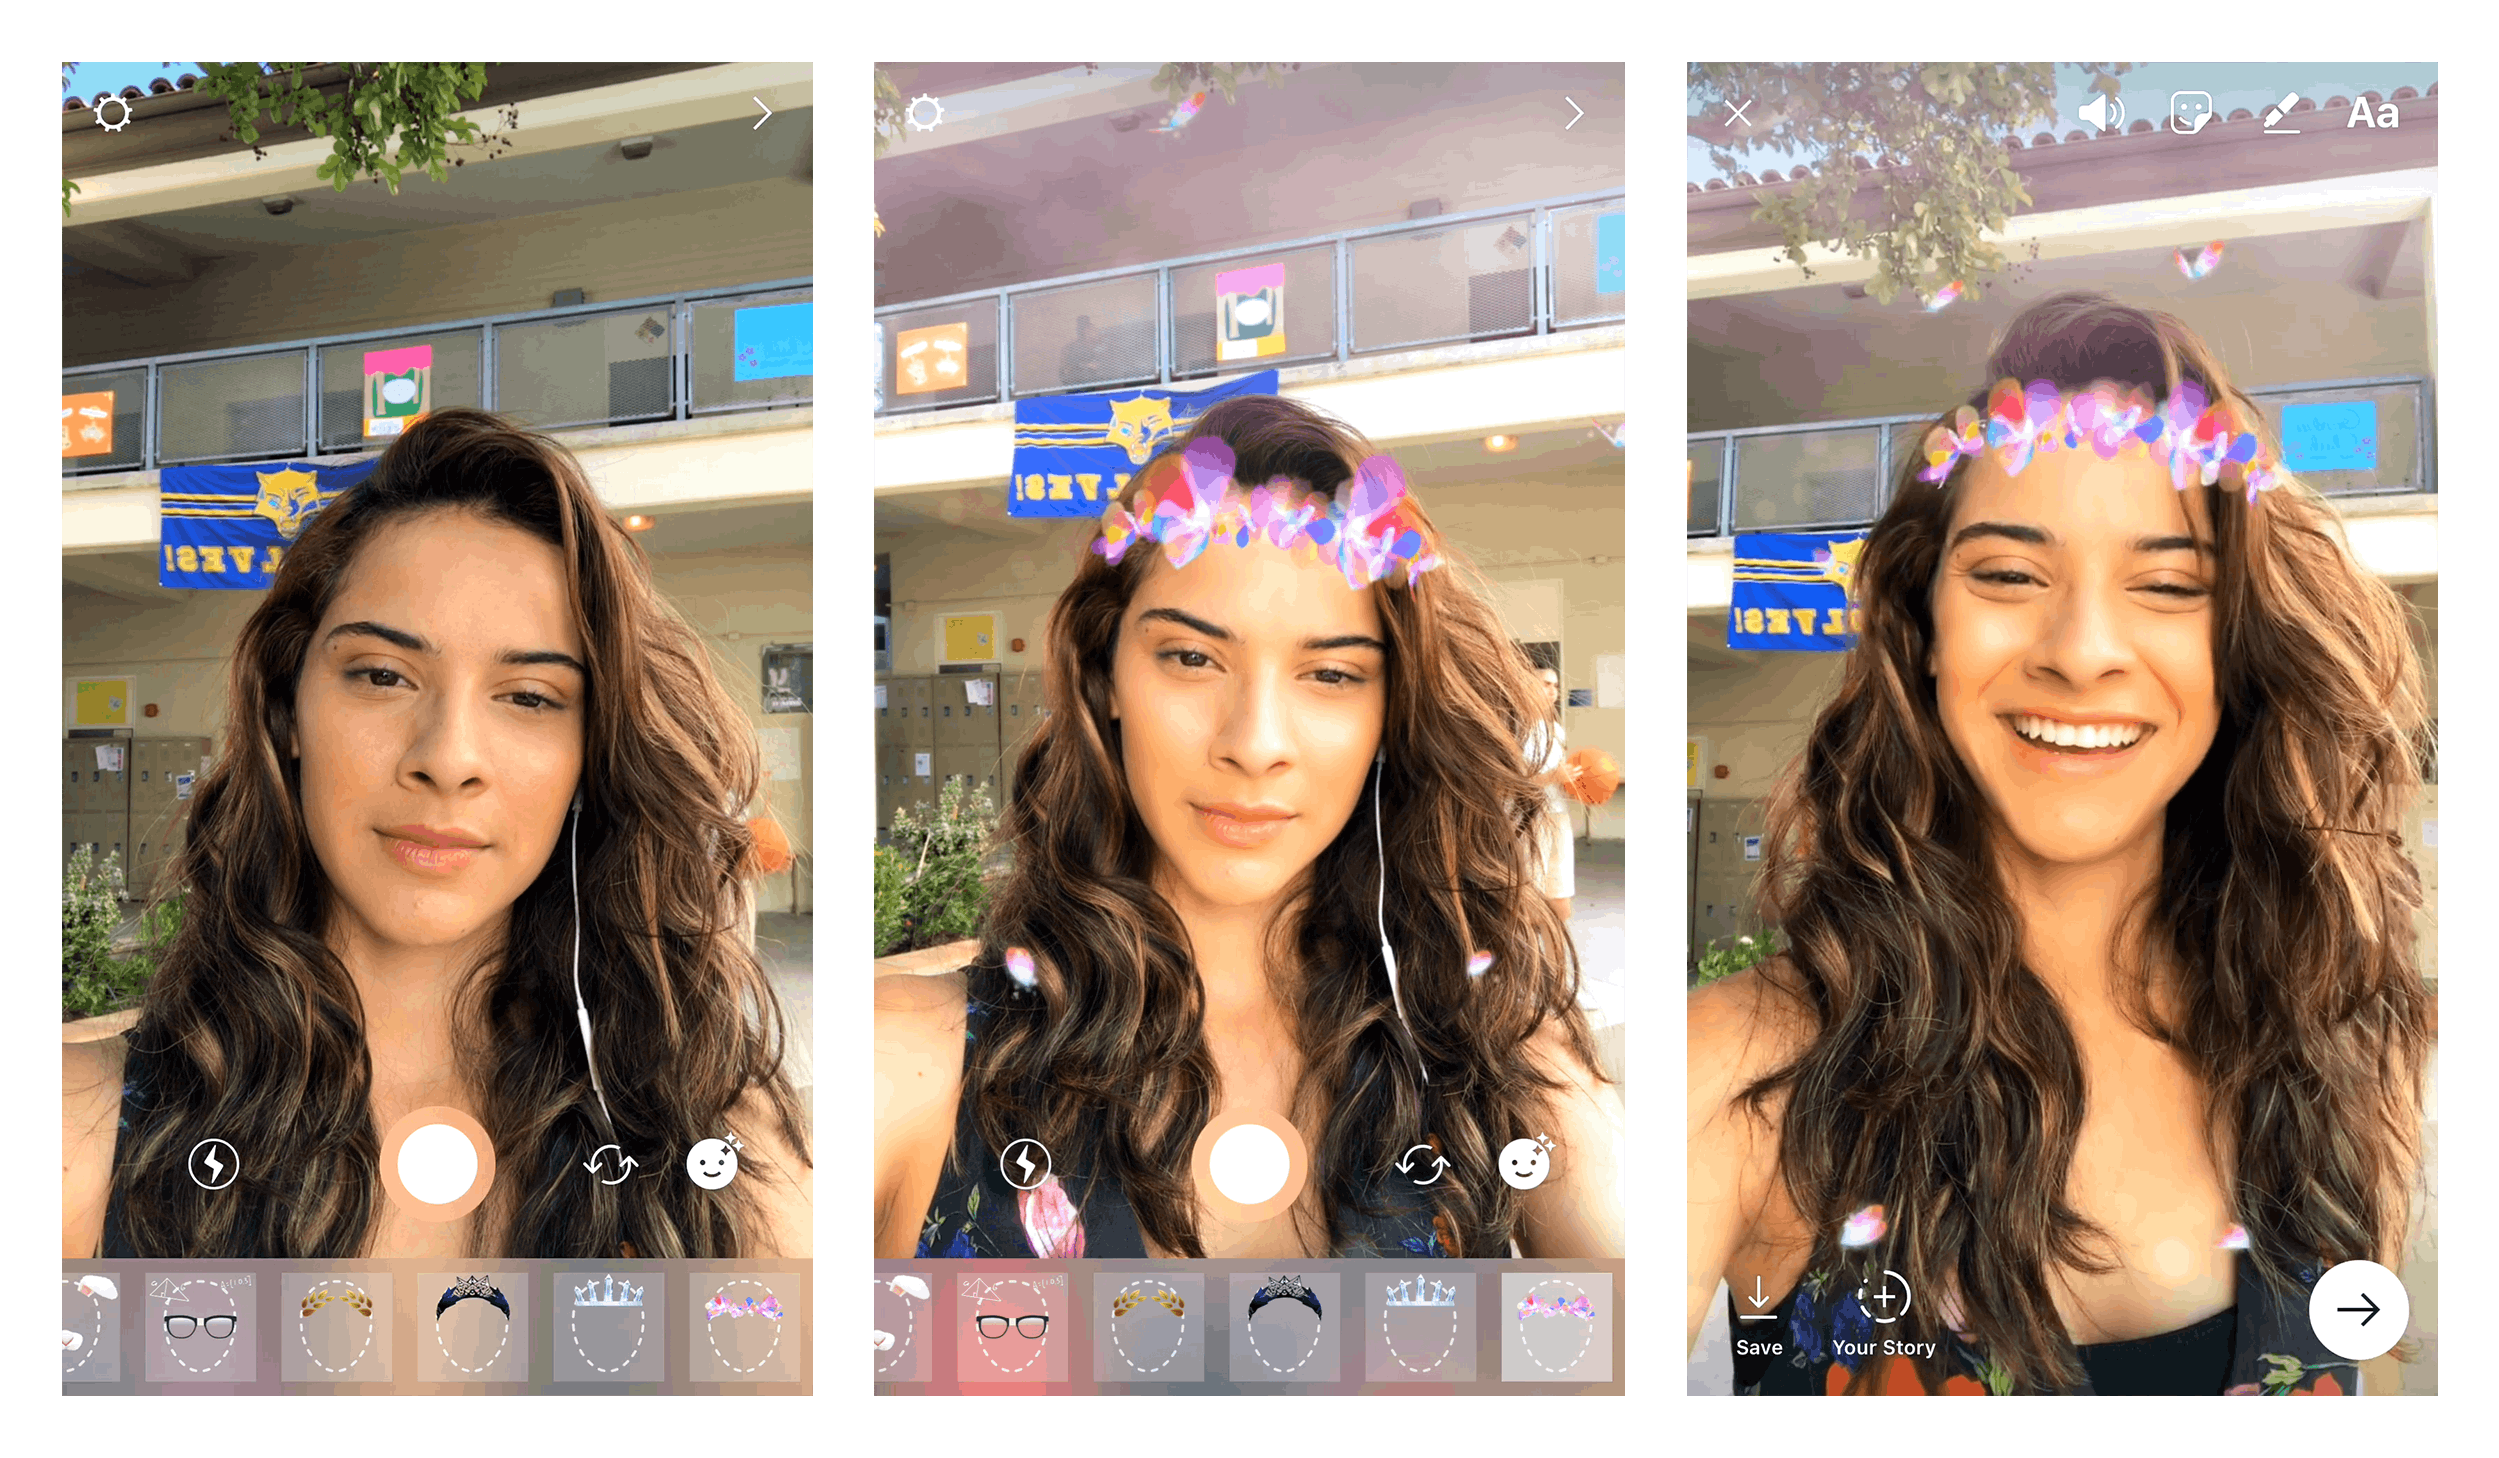 Instagram introduces face filters complete with koala ears and crowns